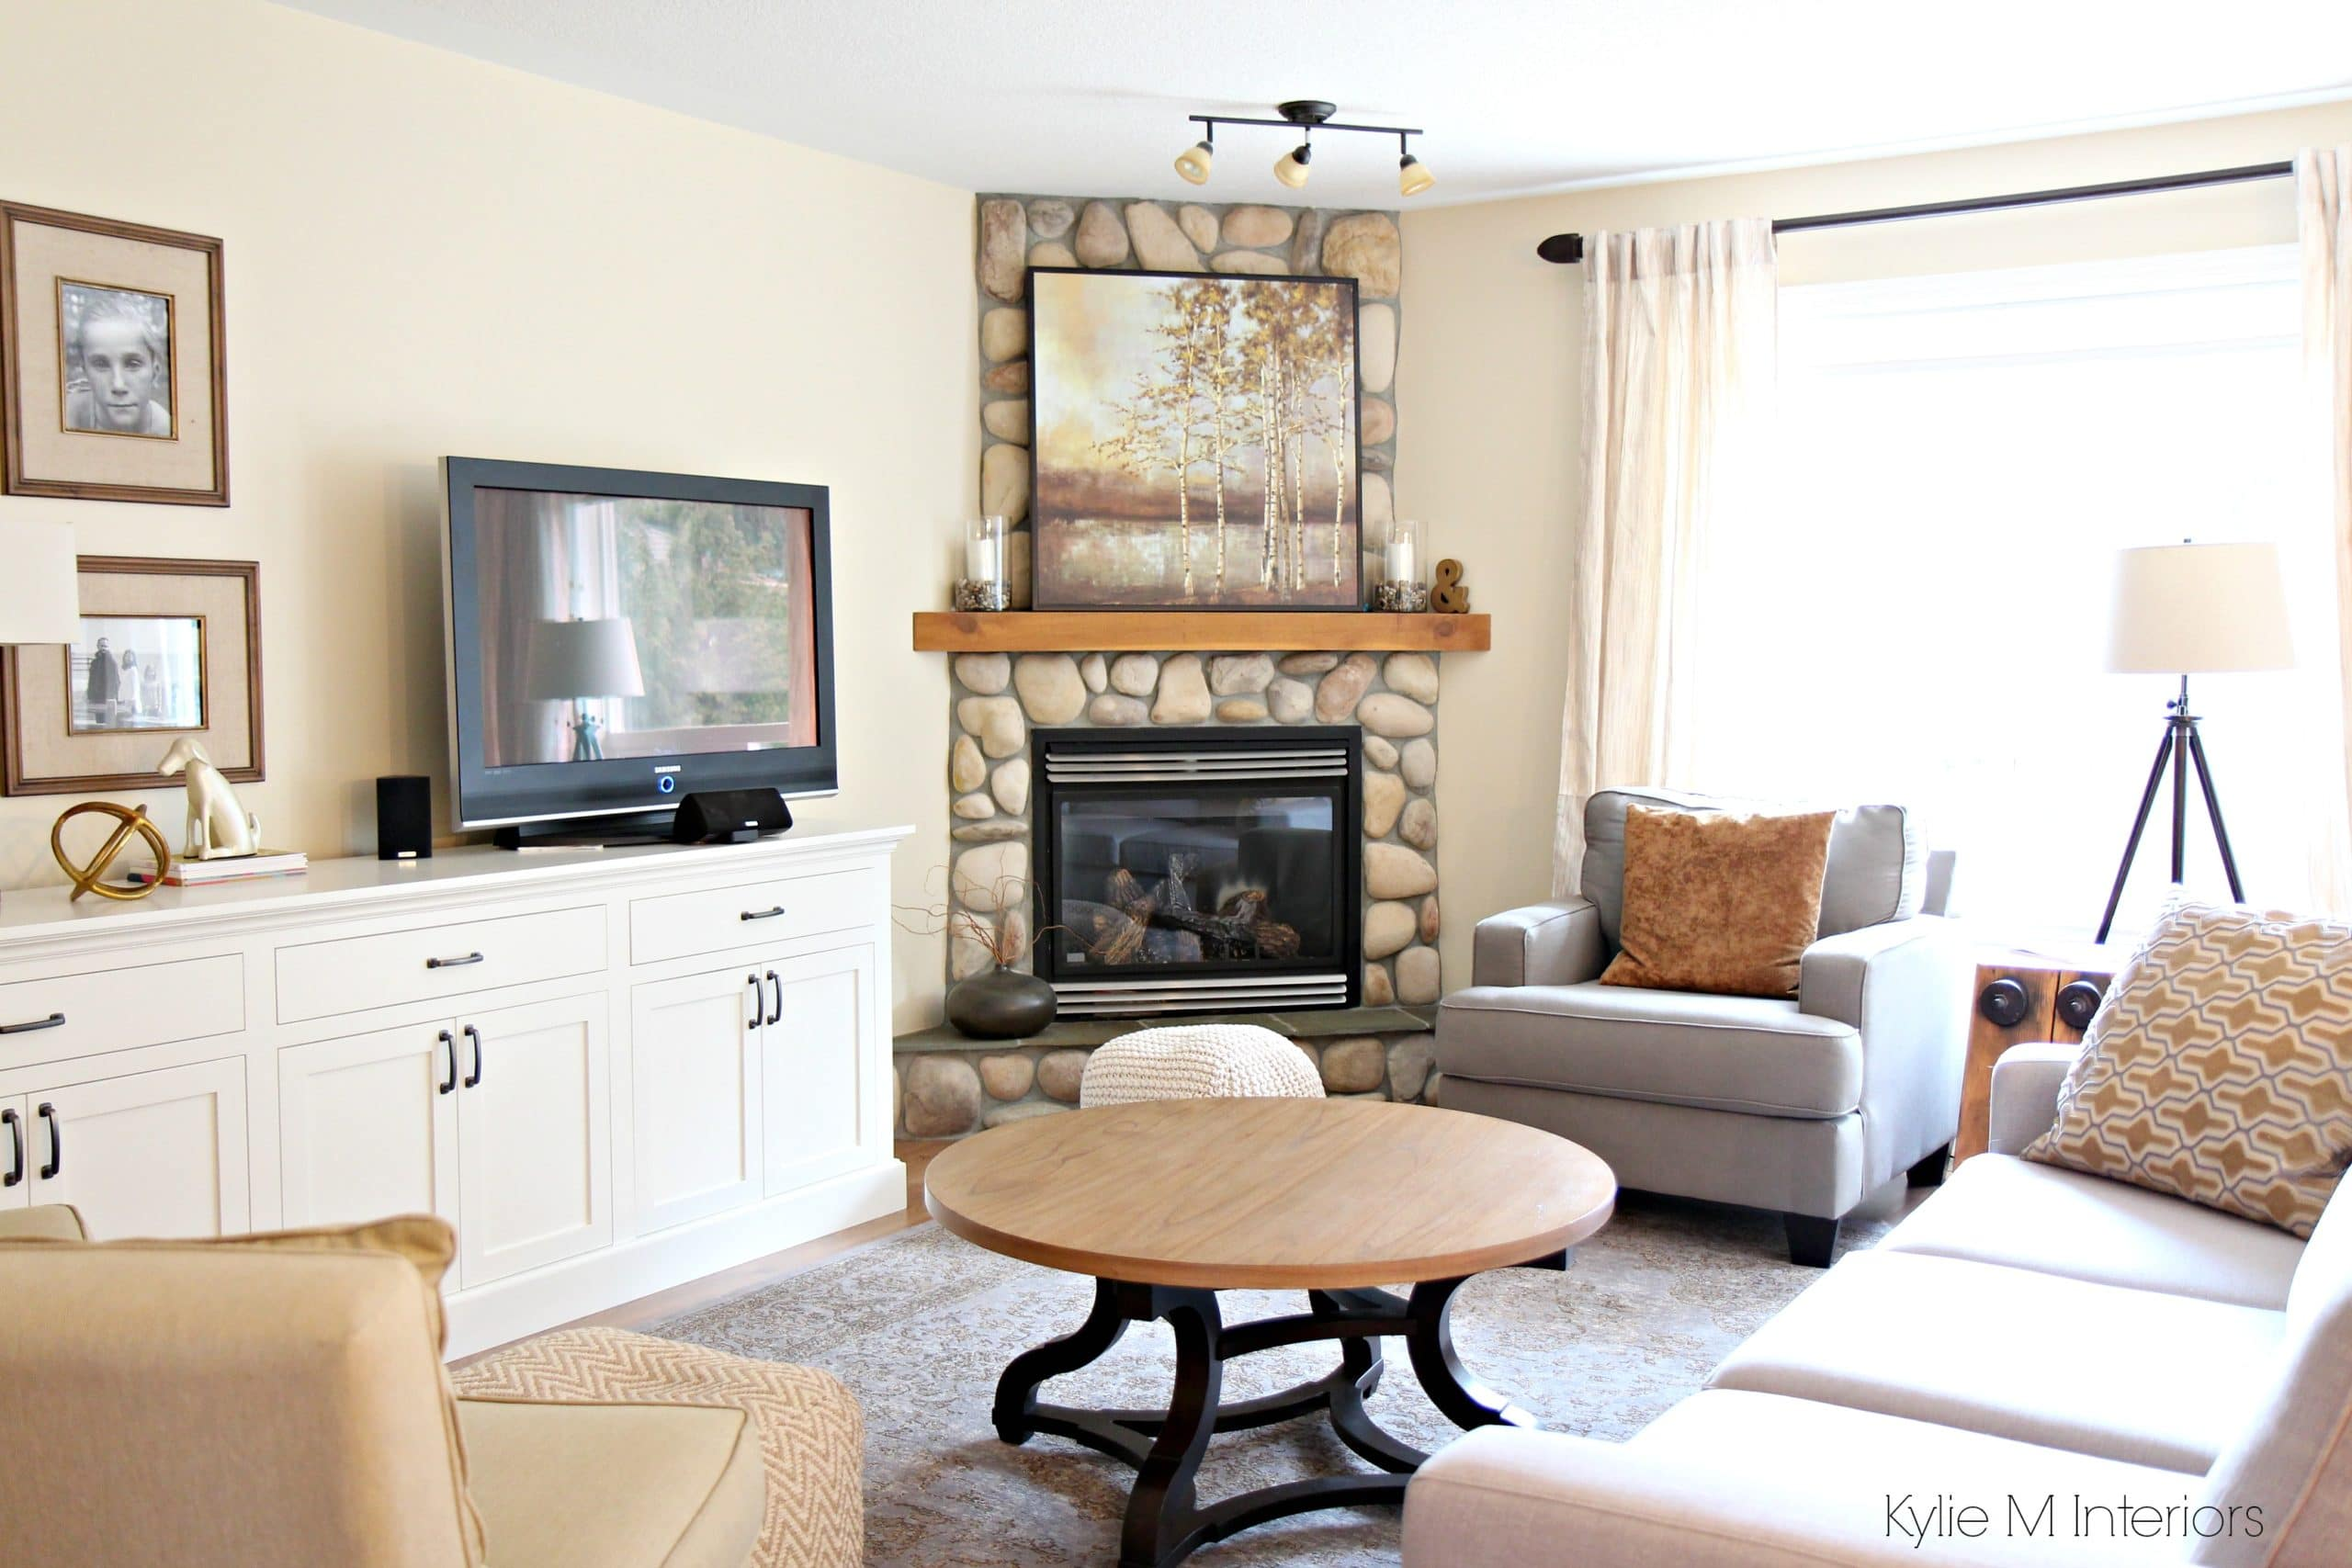 South facing living room with stone corner fireplace